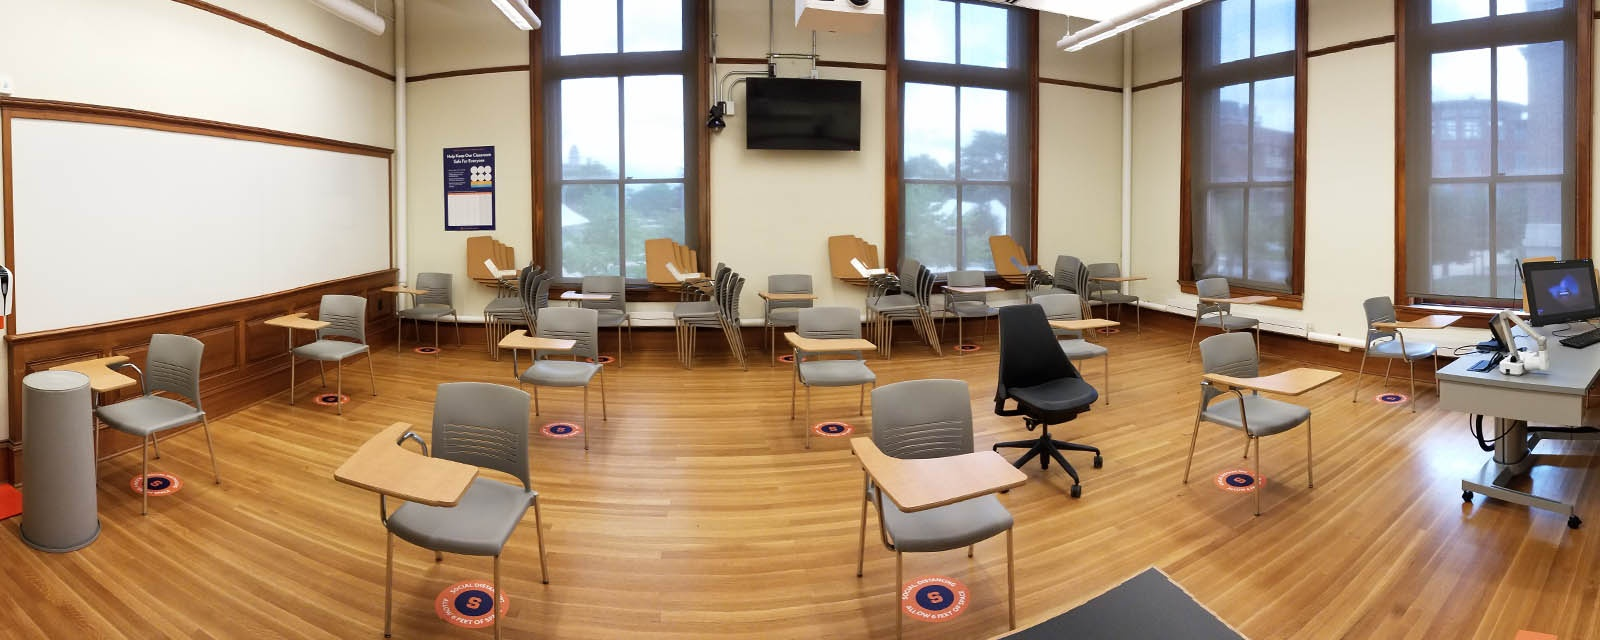 Carnegie 200 Panorama from Front to rear, chairs moveable with desk attached, teaching station straight across from entrance